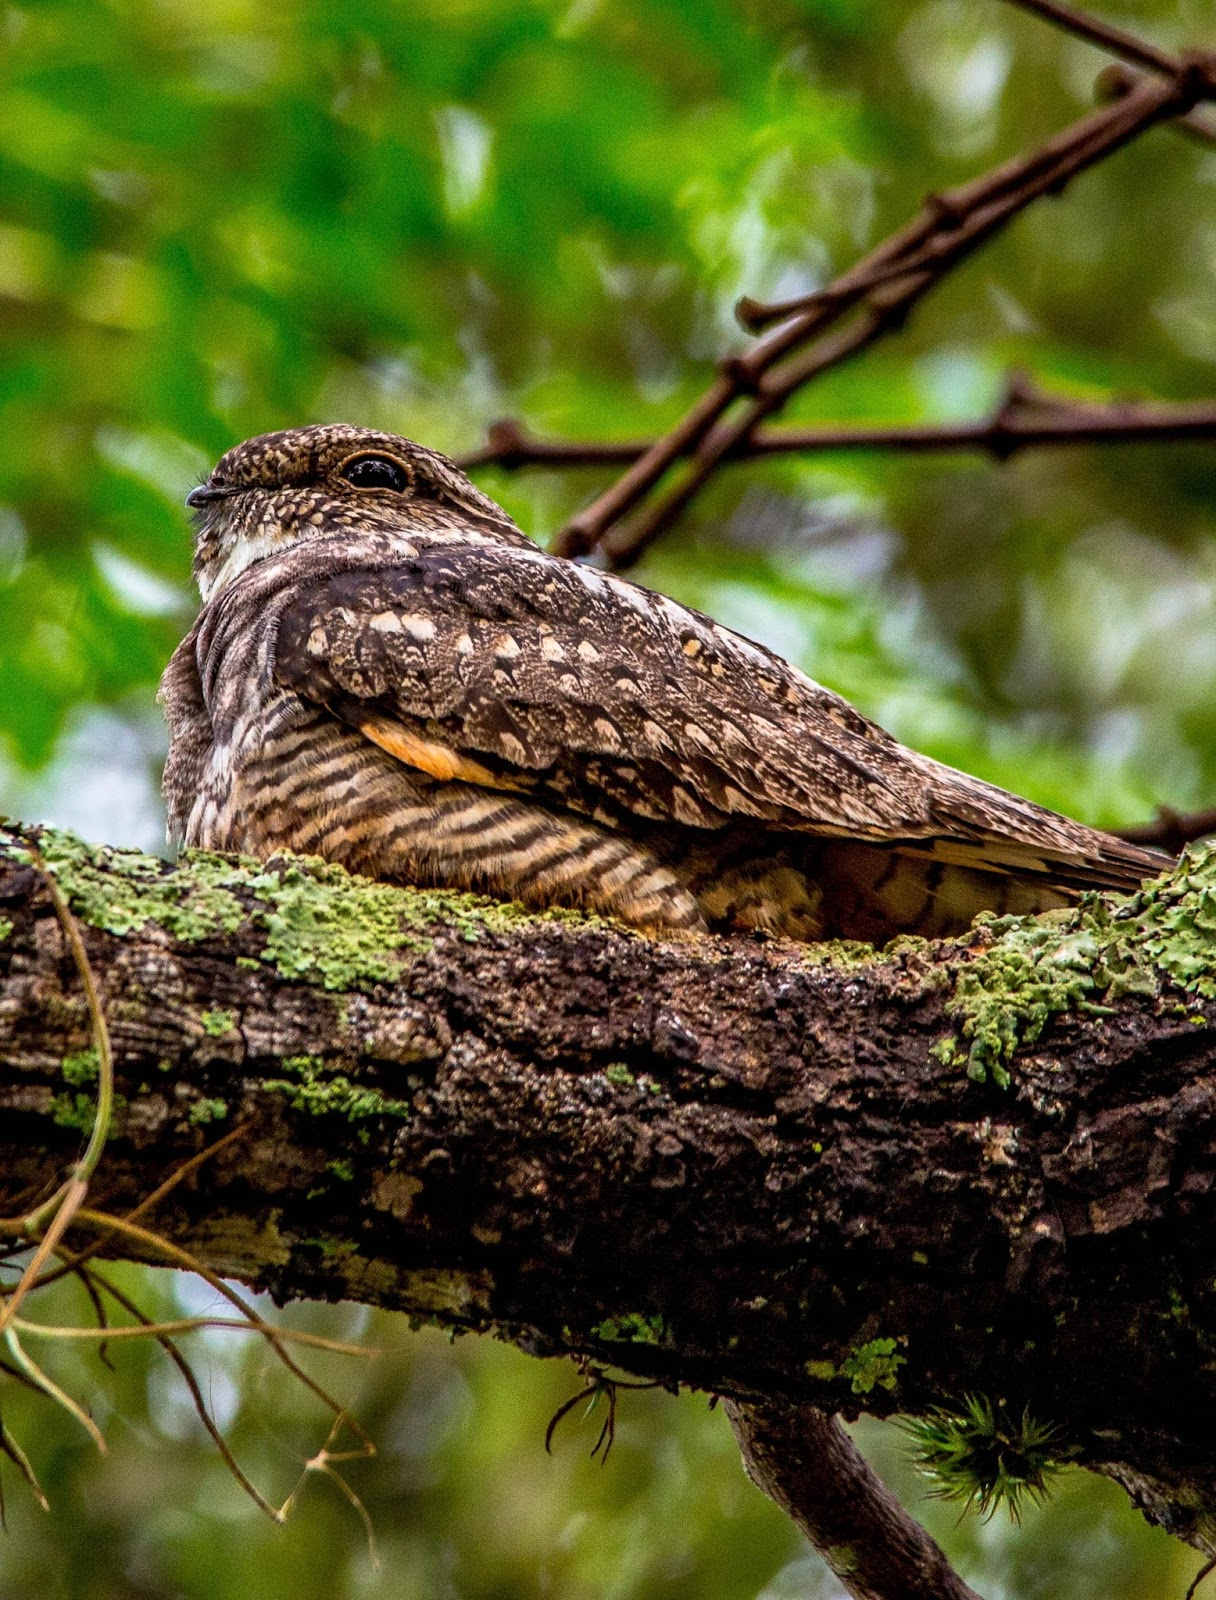 Picture of a whippoorwill bird.